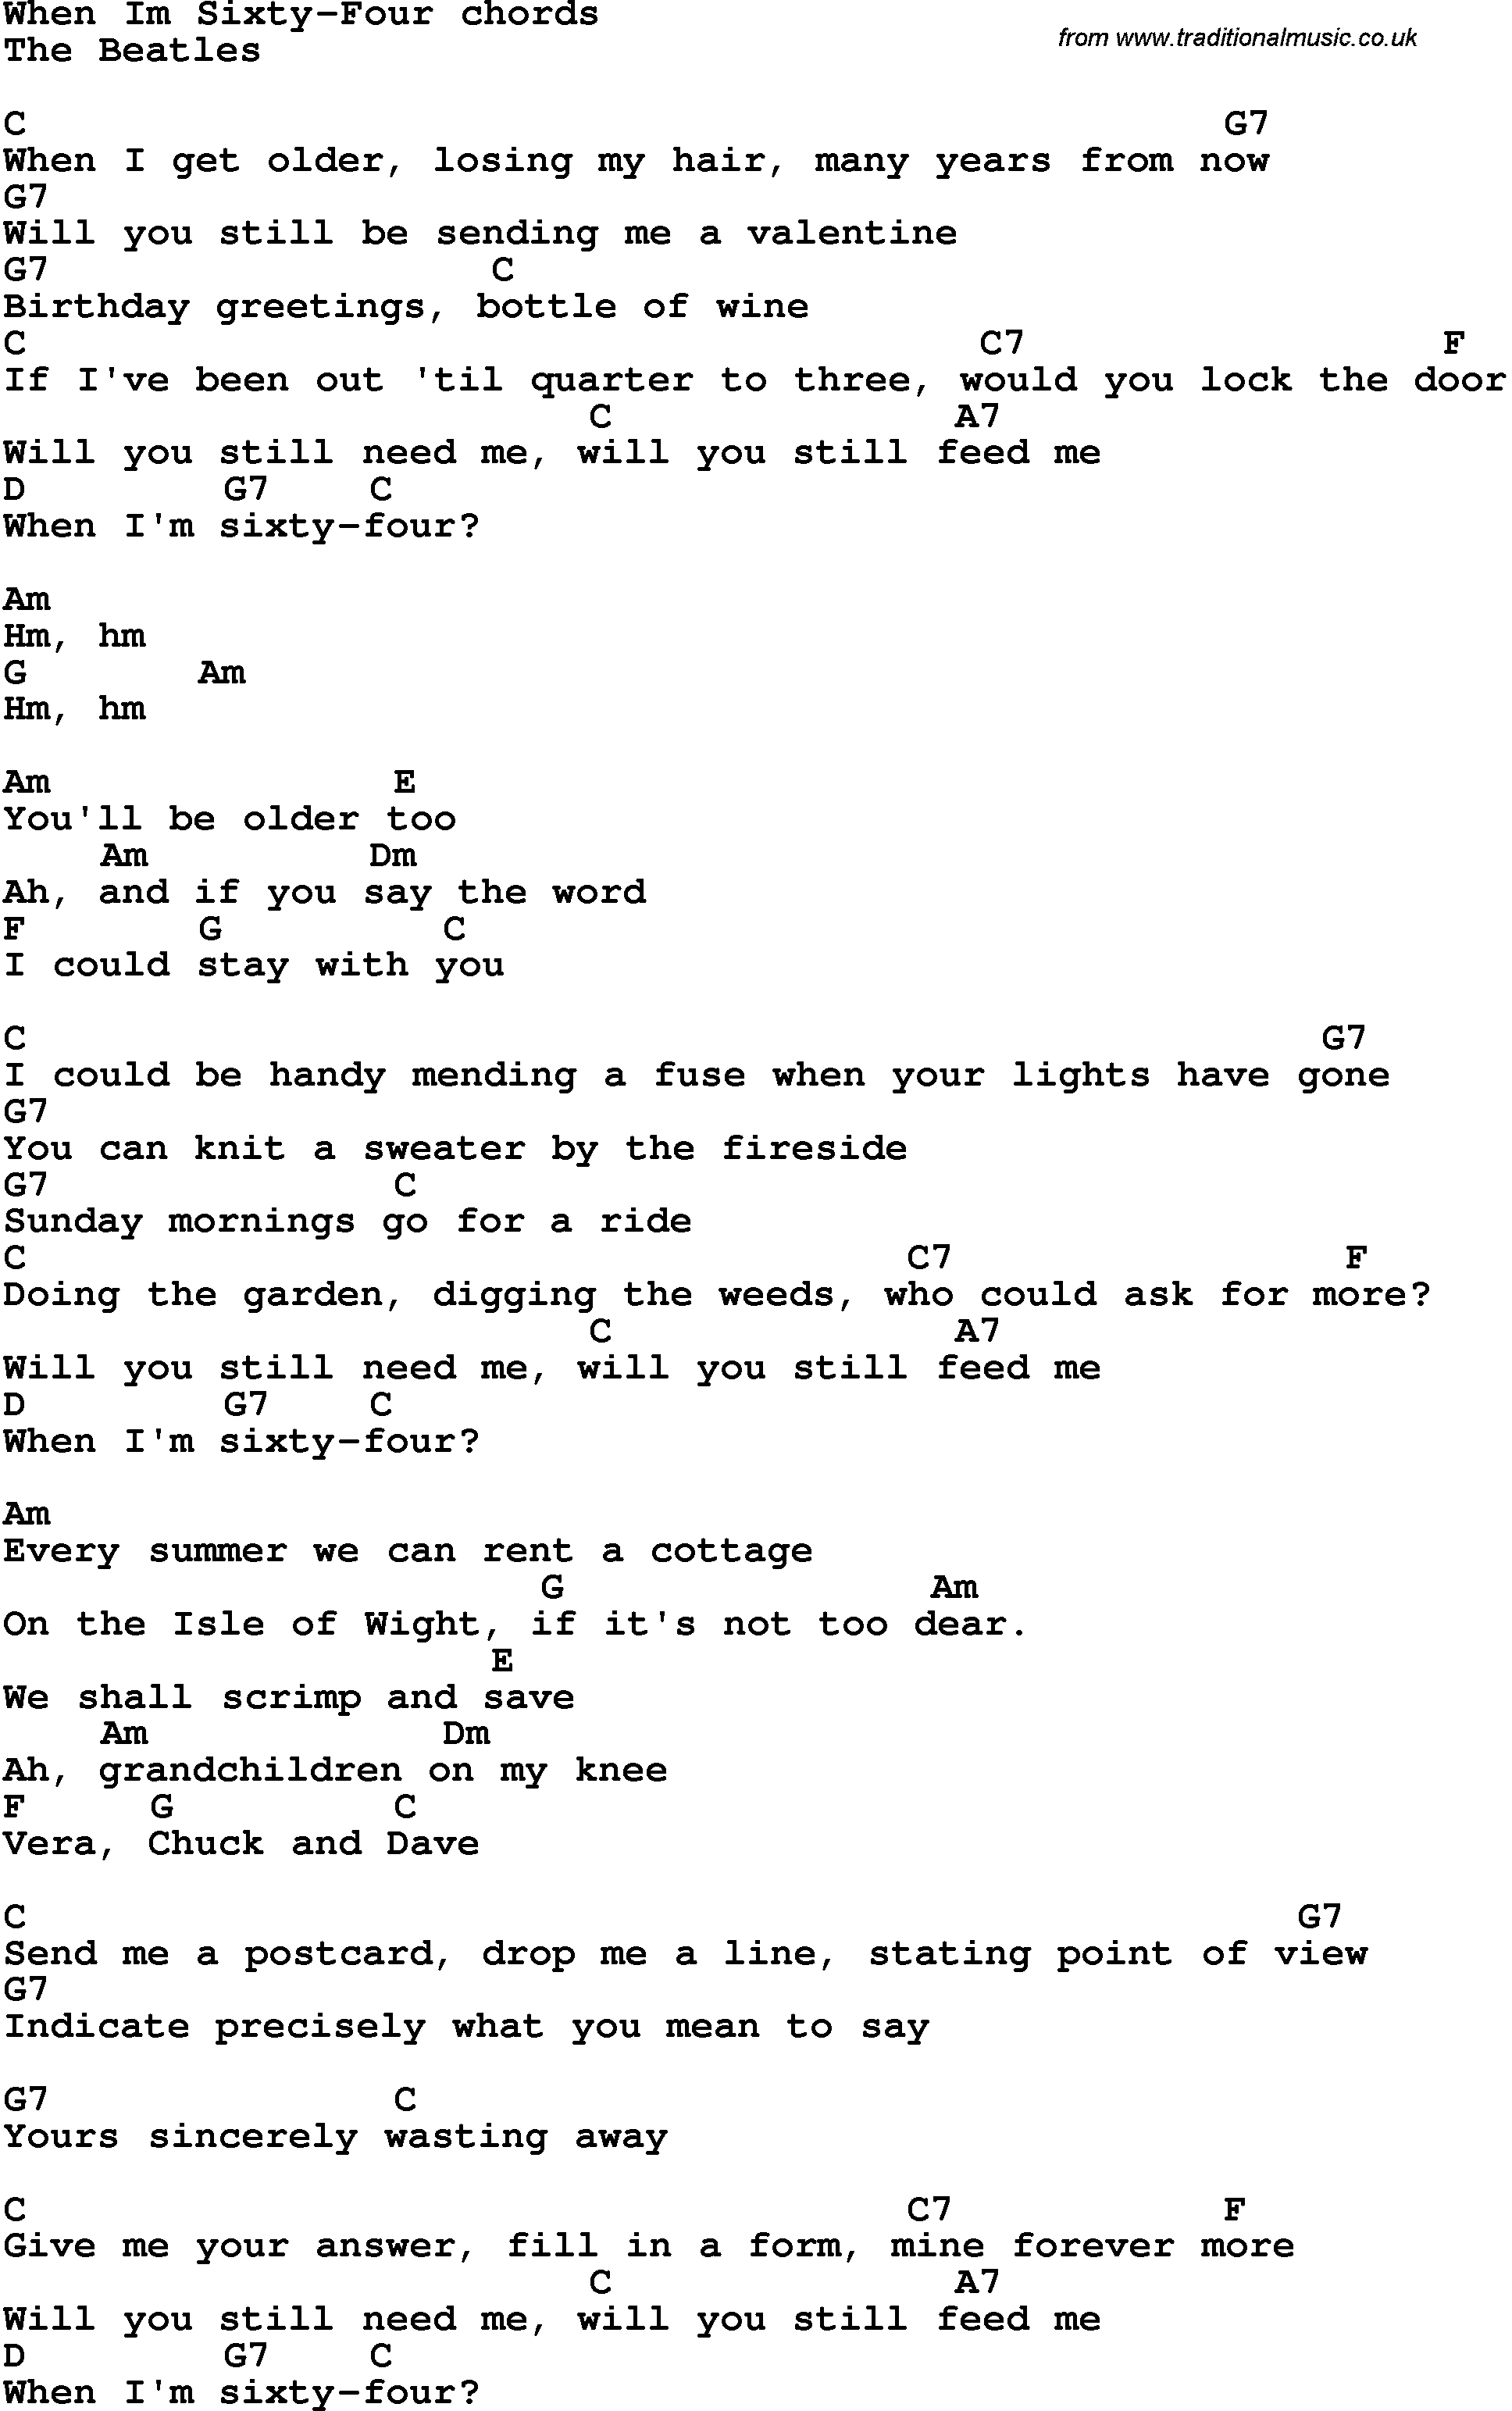 Song lyrics with guitar chords for when im 64 the beatles song lyrics with guitar chords for when im 64 the beatles hexwebz Choice Image